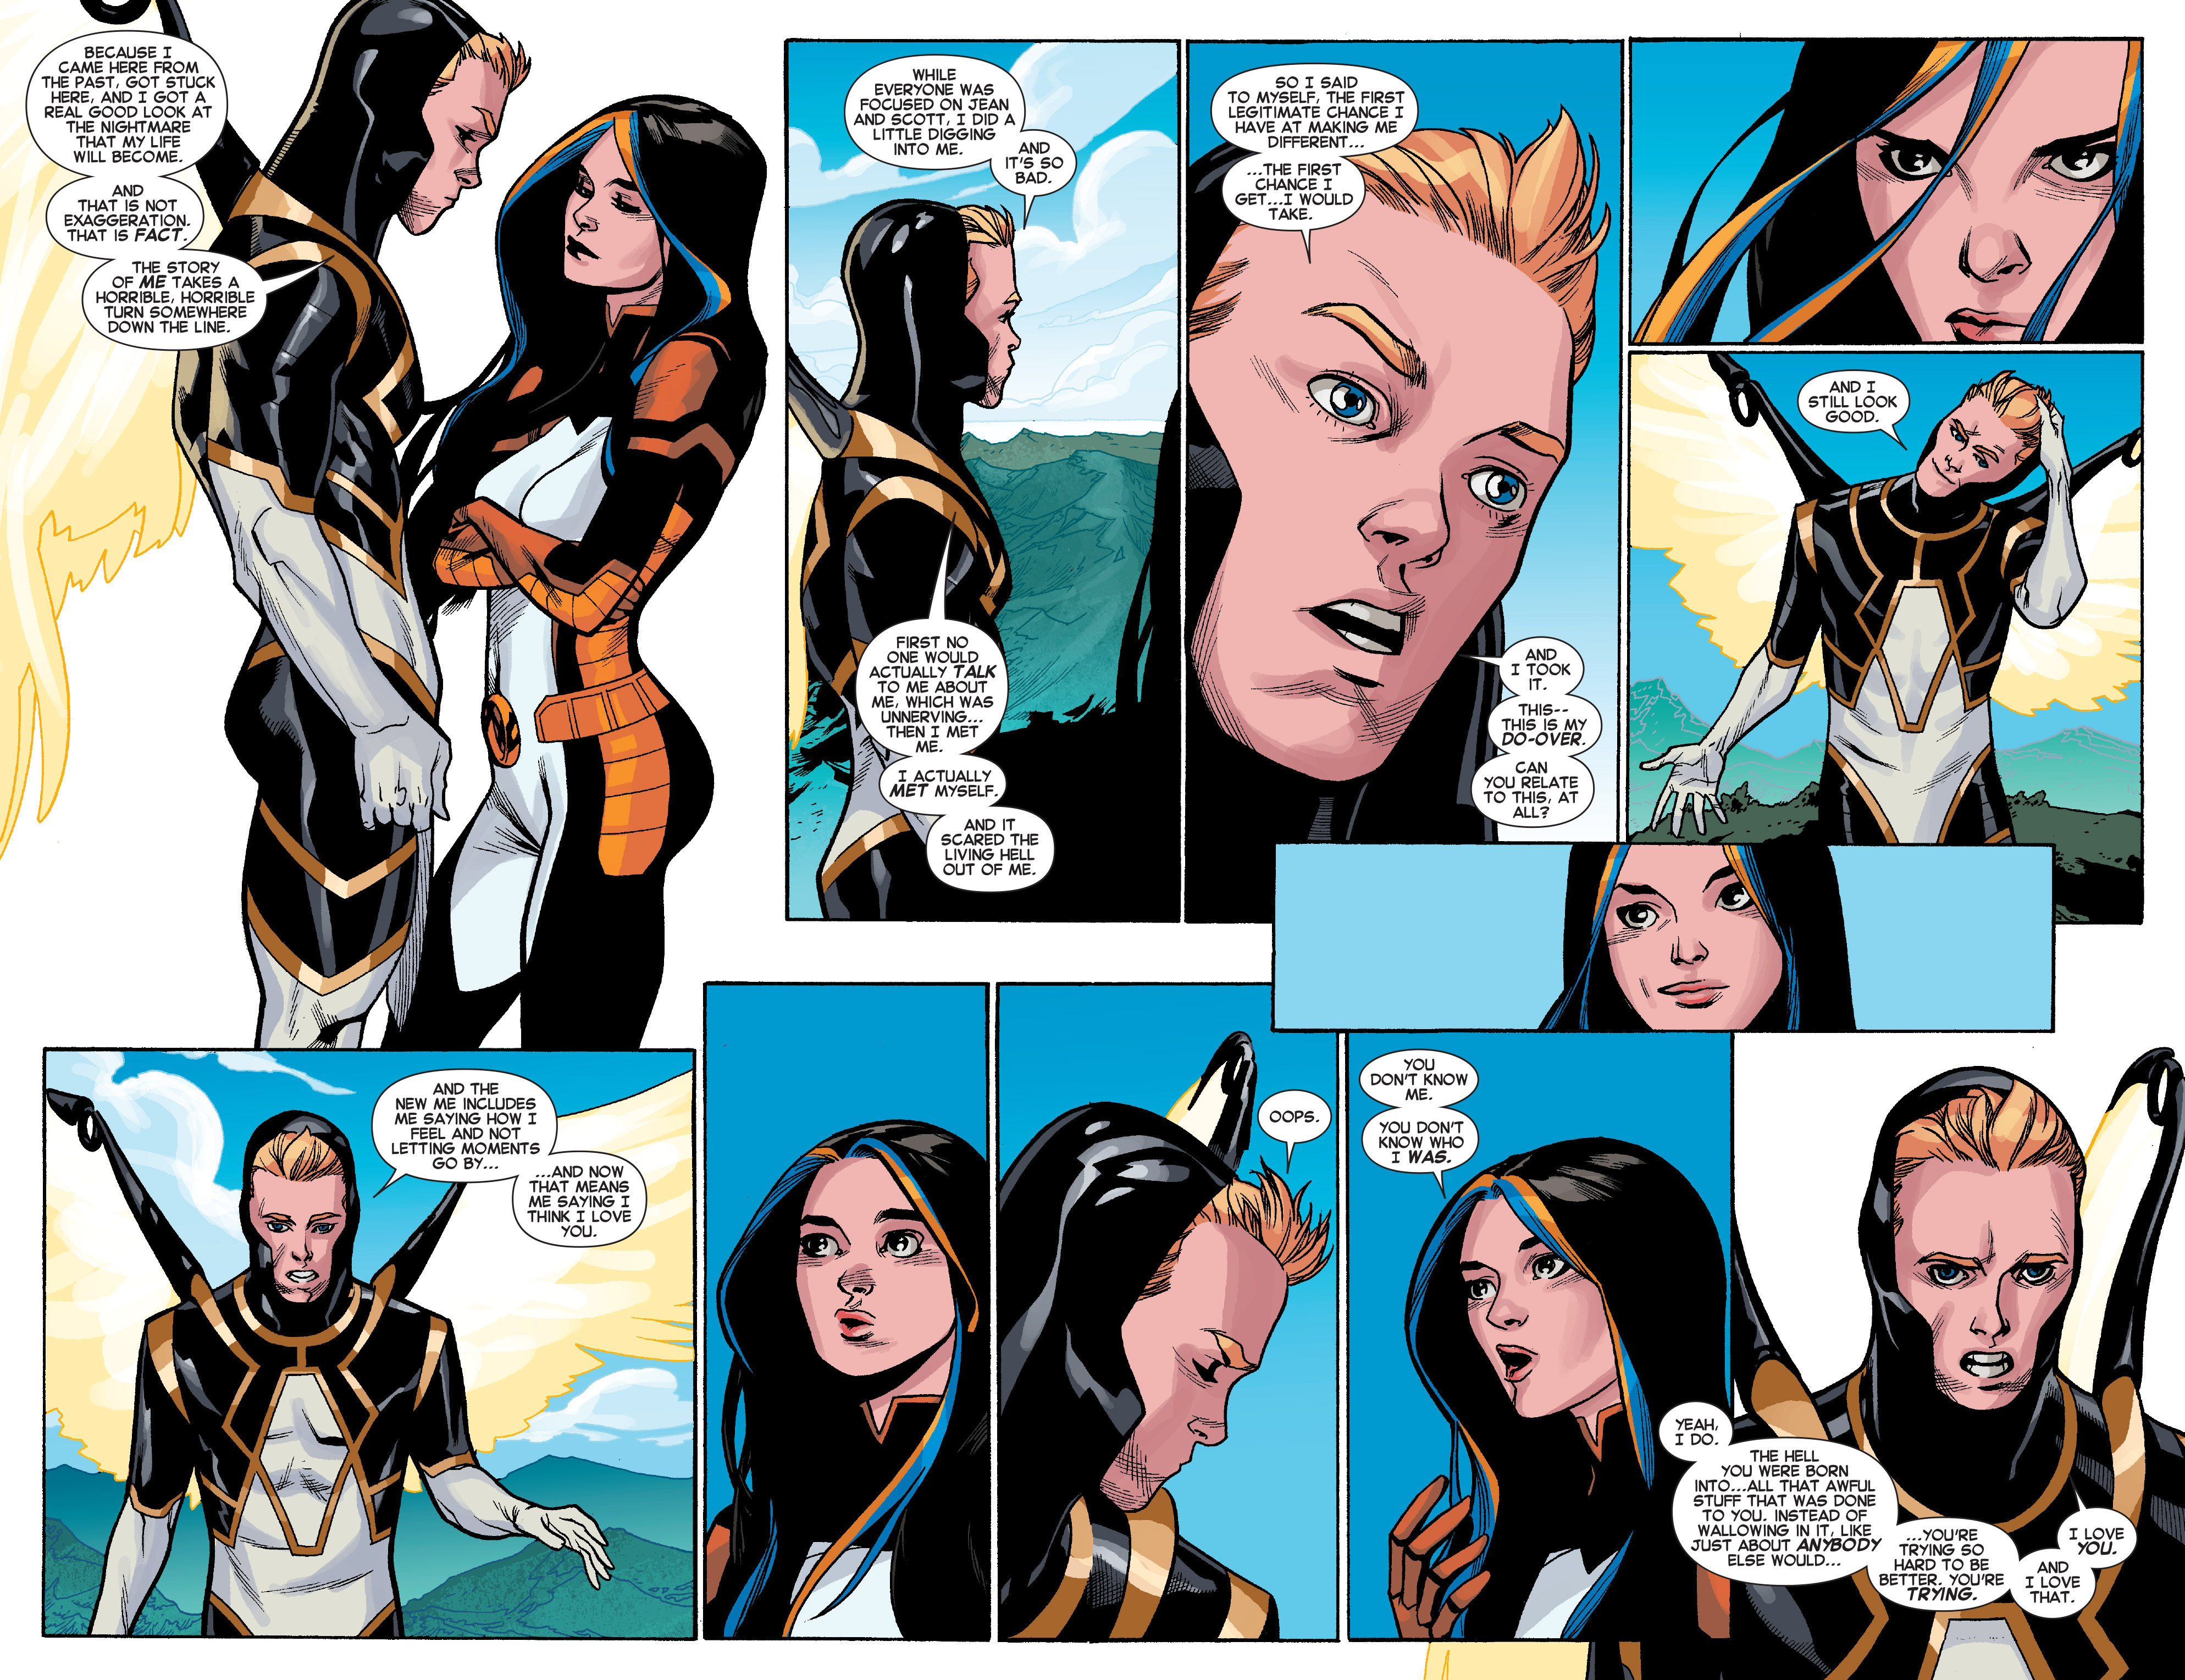 All-New X-Men (2013) chap 40 pic 17